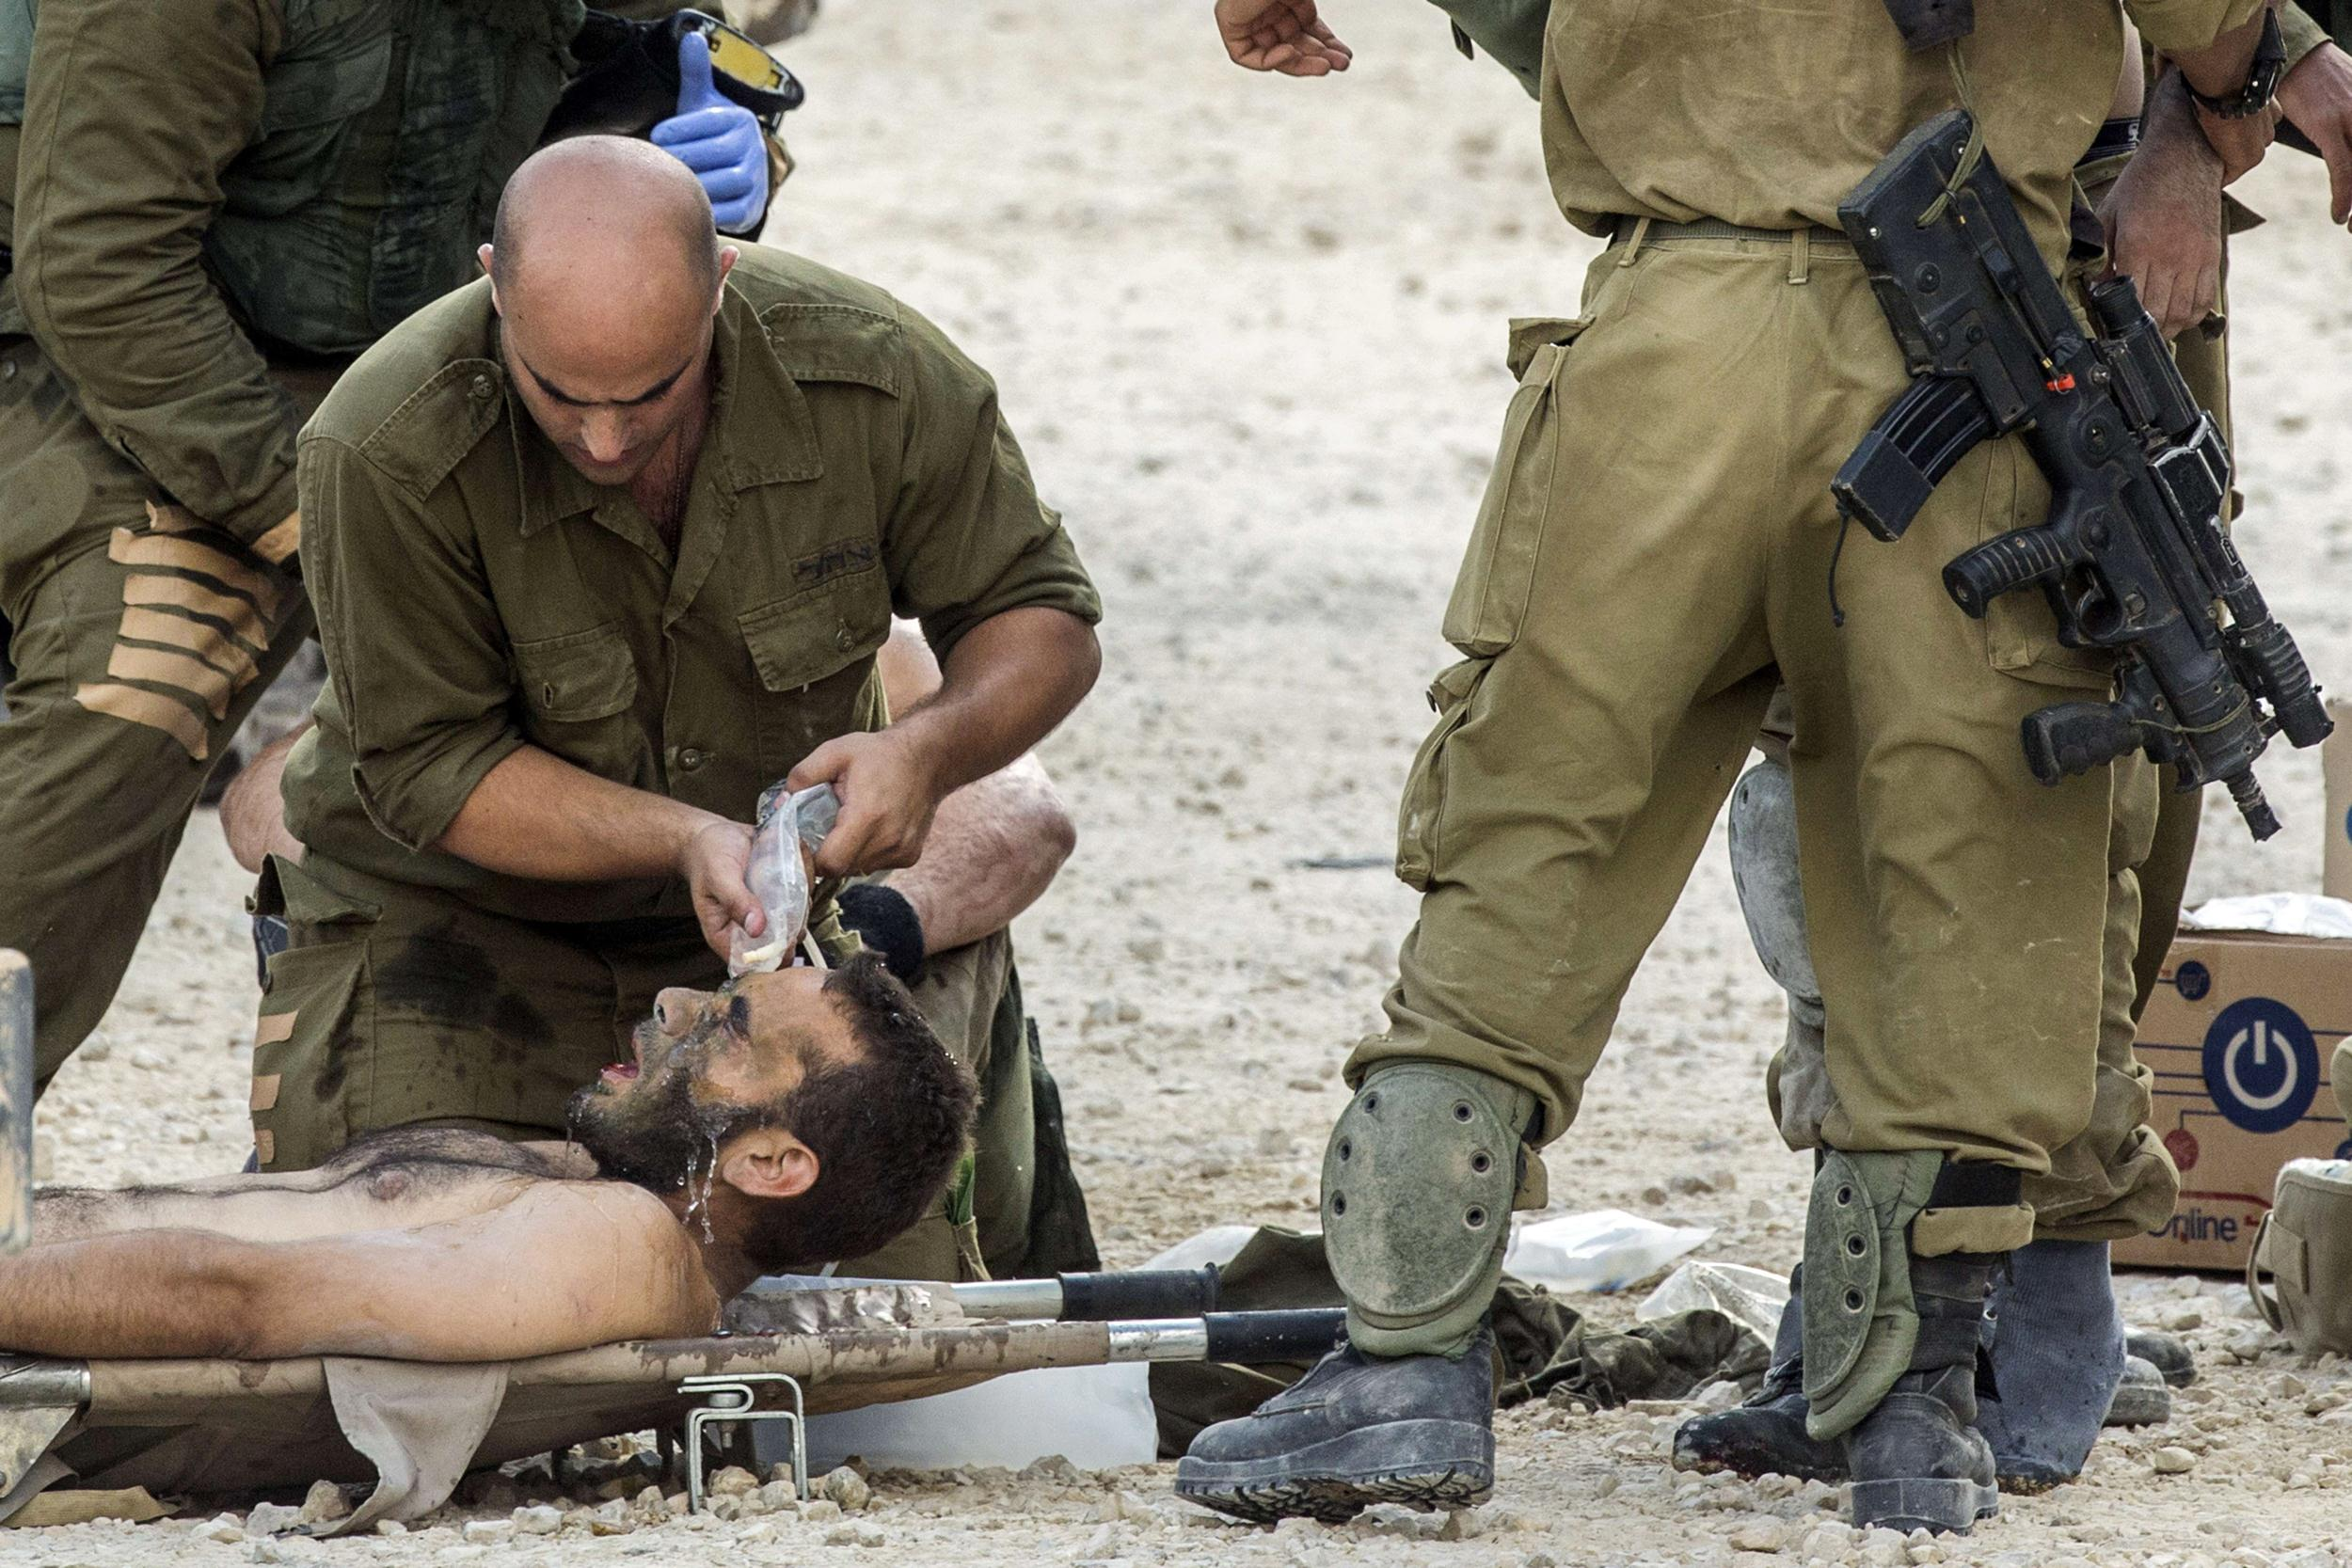 Image: Israeli soldiers treat wounded comrades